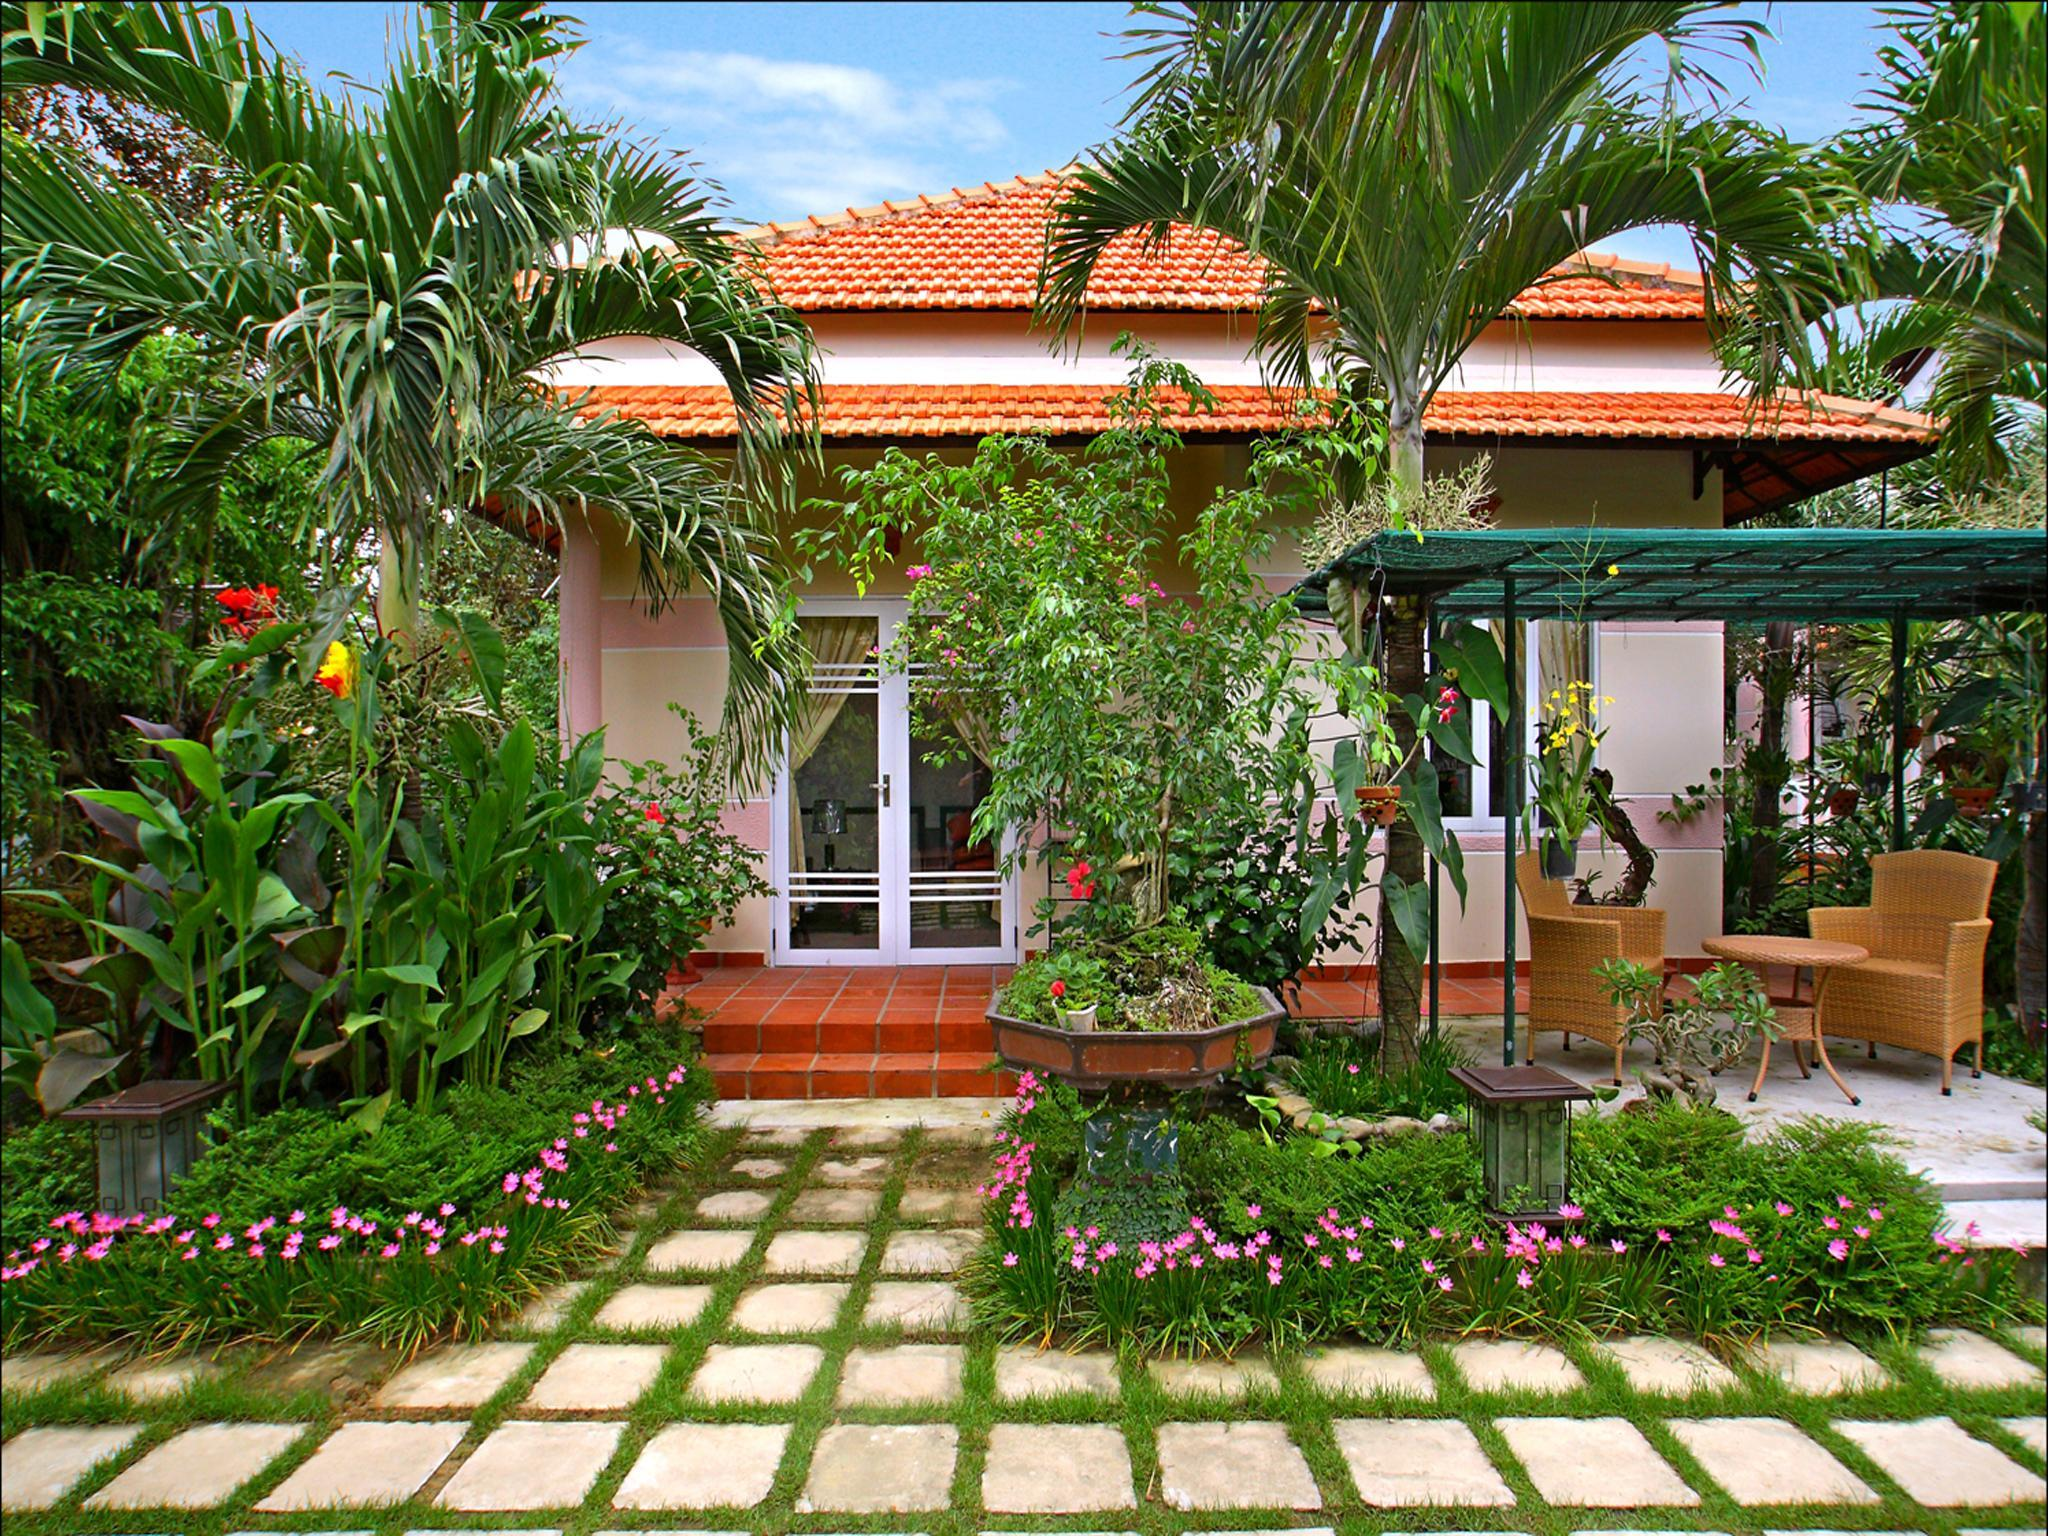 Hoi an botanic garden villas cam chau hoi an vietnam for Gardens and villa